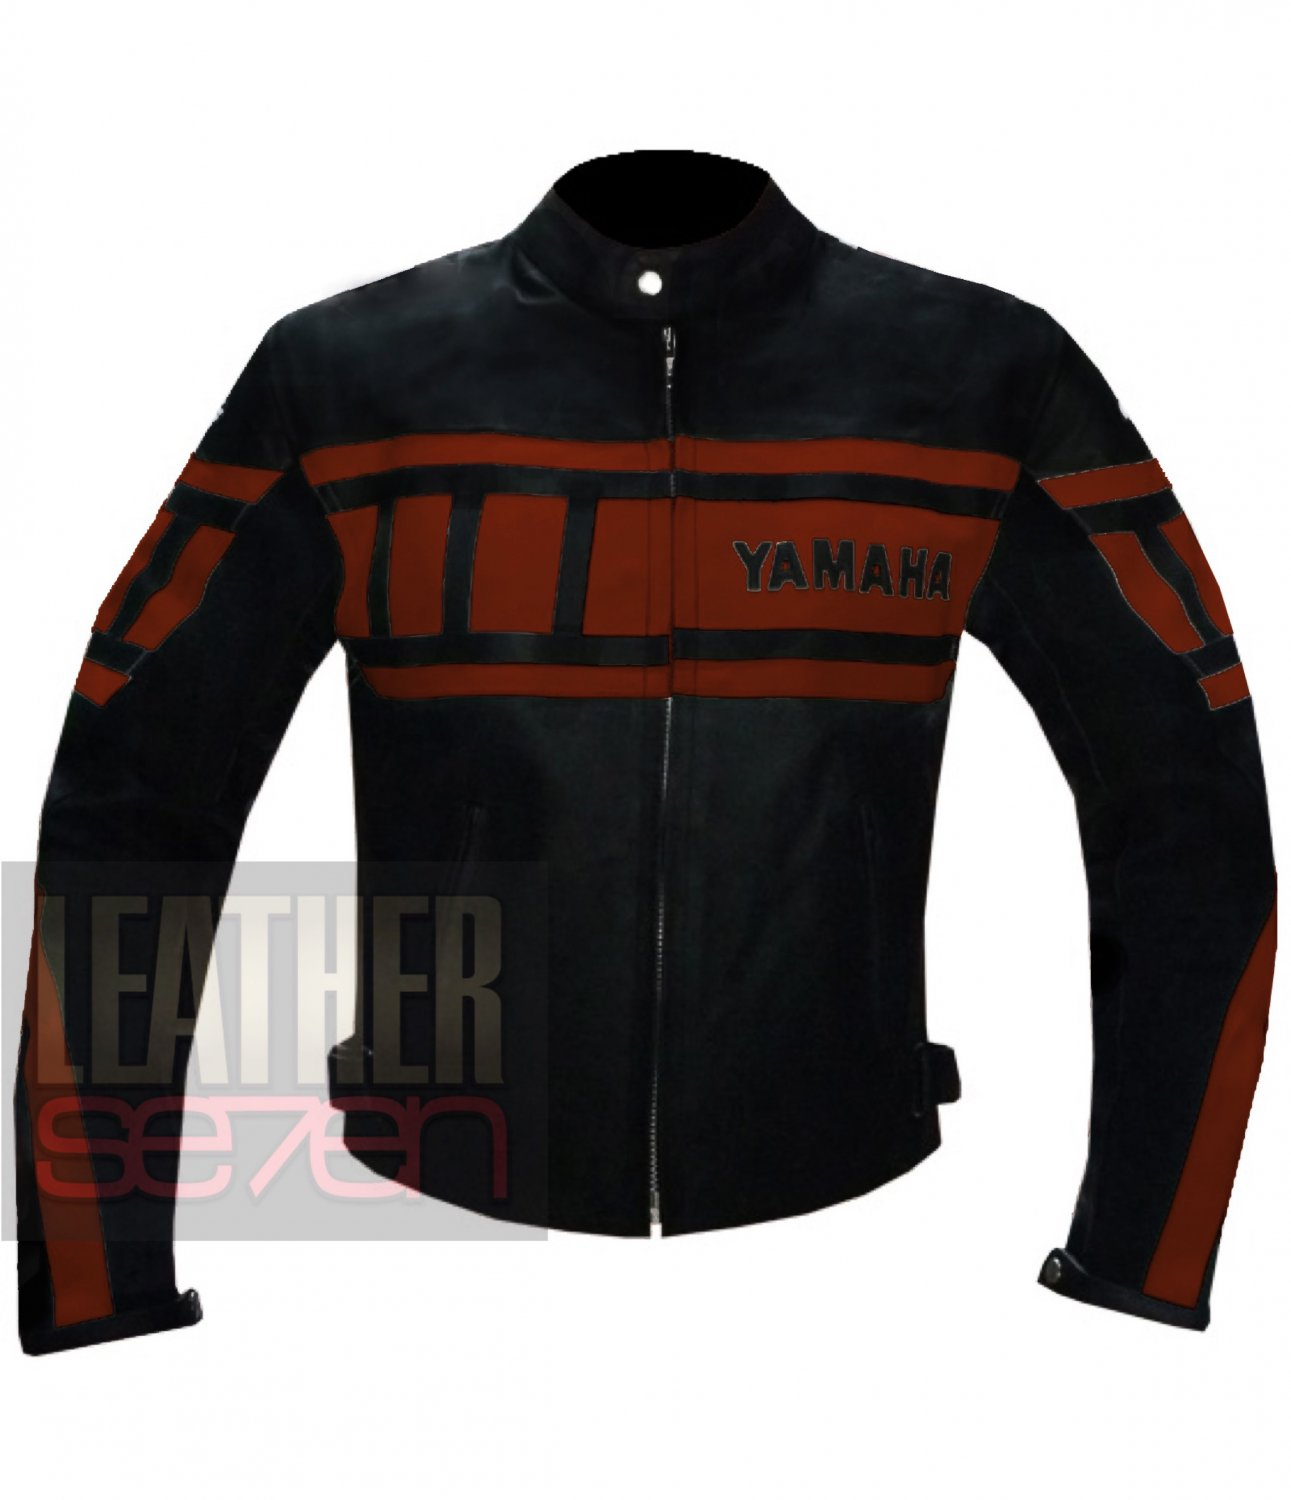 Pure Genuine Cowhide Racing Leather Jacket ... Yamaha 0120 Orange Coat